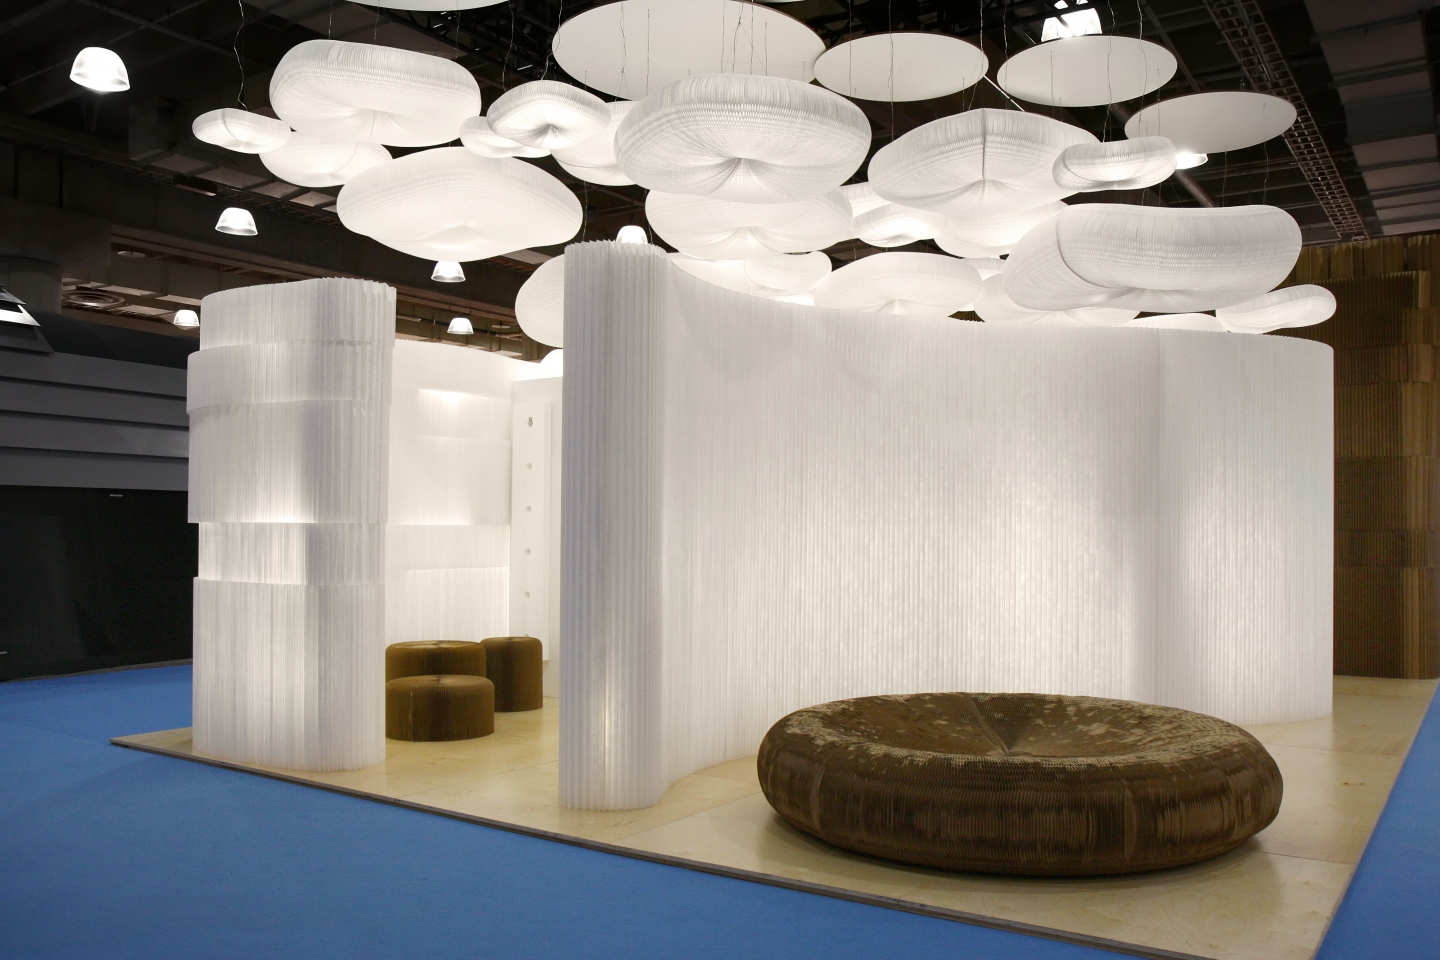 molo soft collection of flexible, modular space partitions, seating, tables and lighting at ICFF 2010 in New York